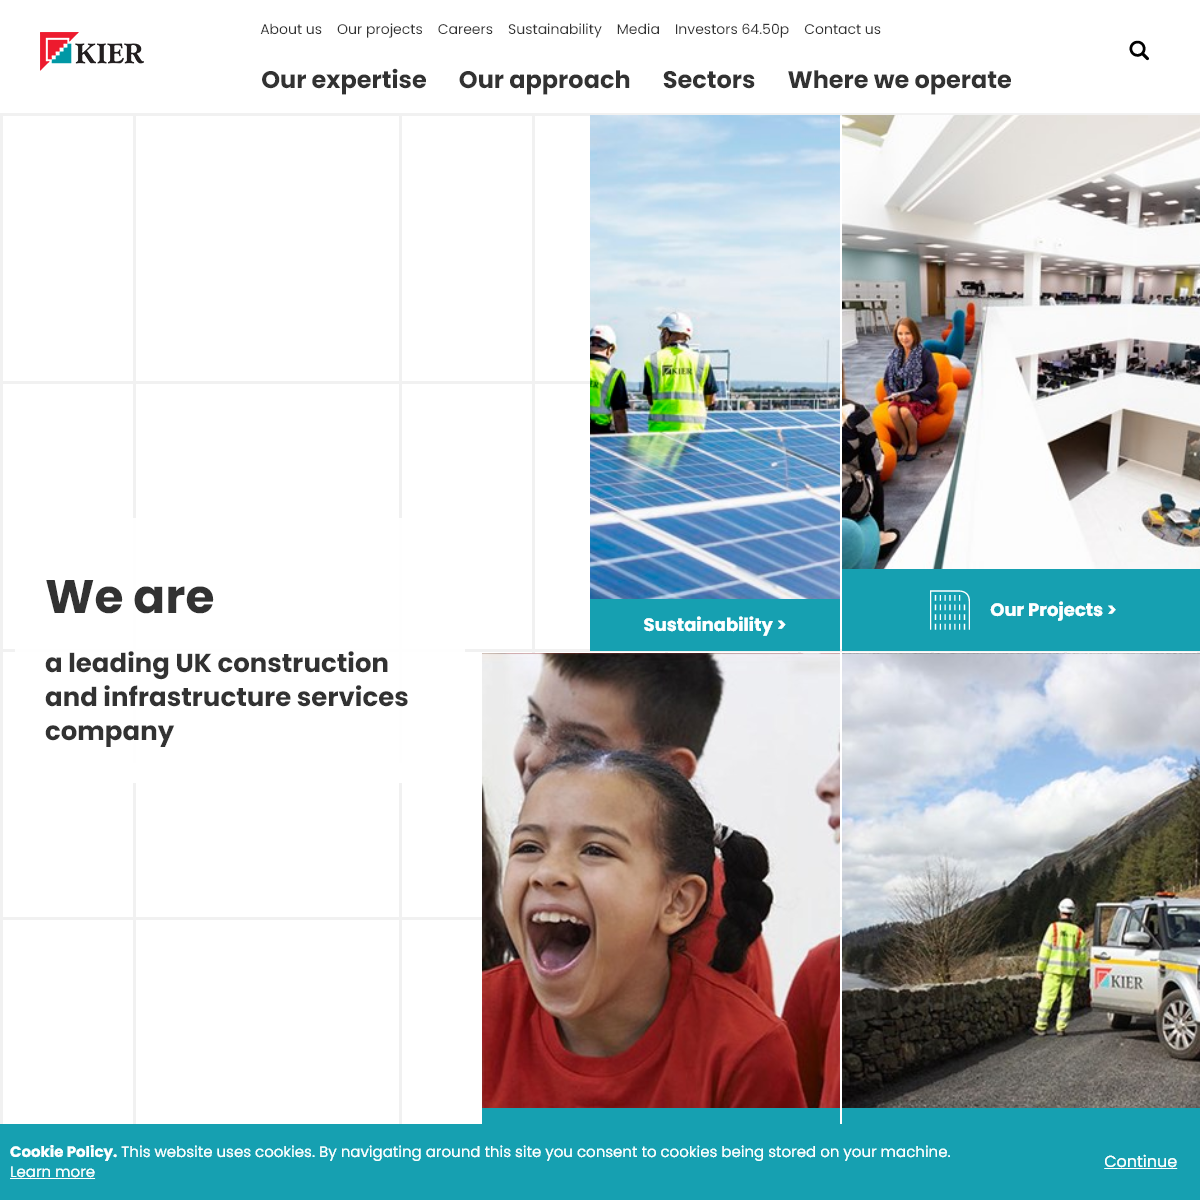 Kier - A leading UK construction and infrastructure services company